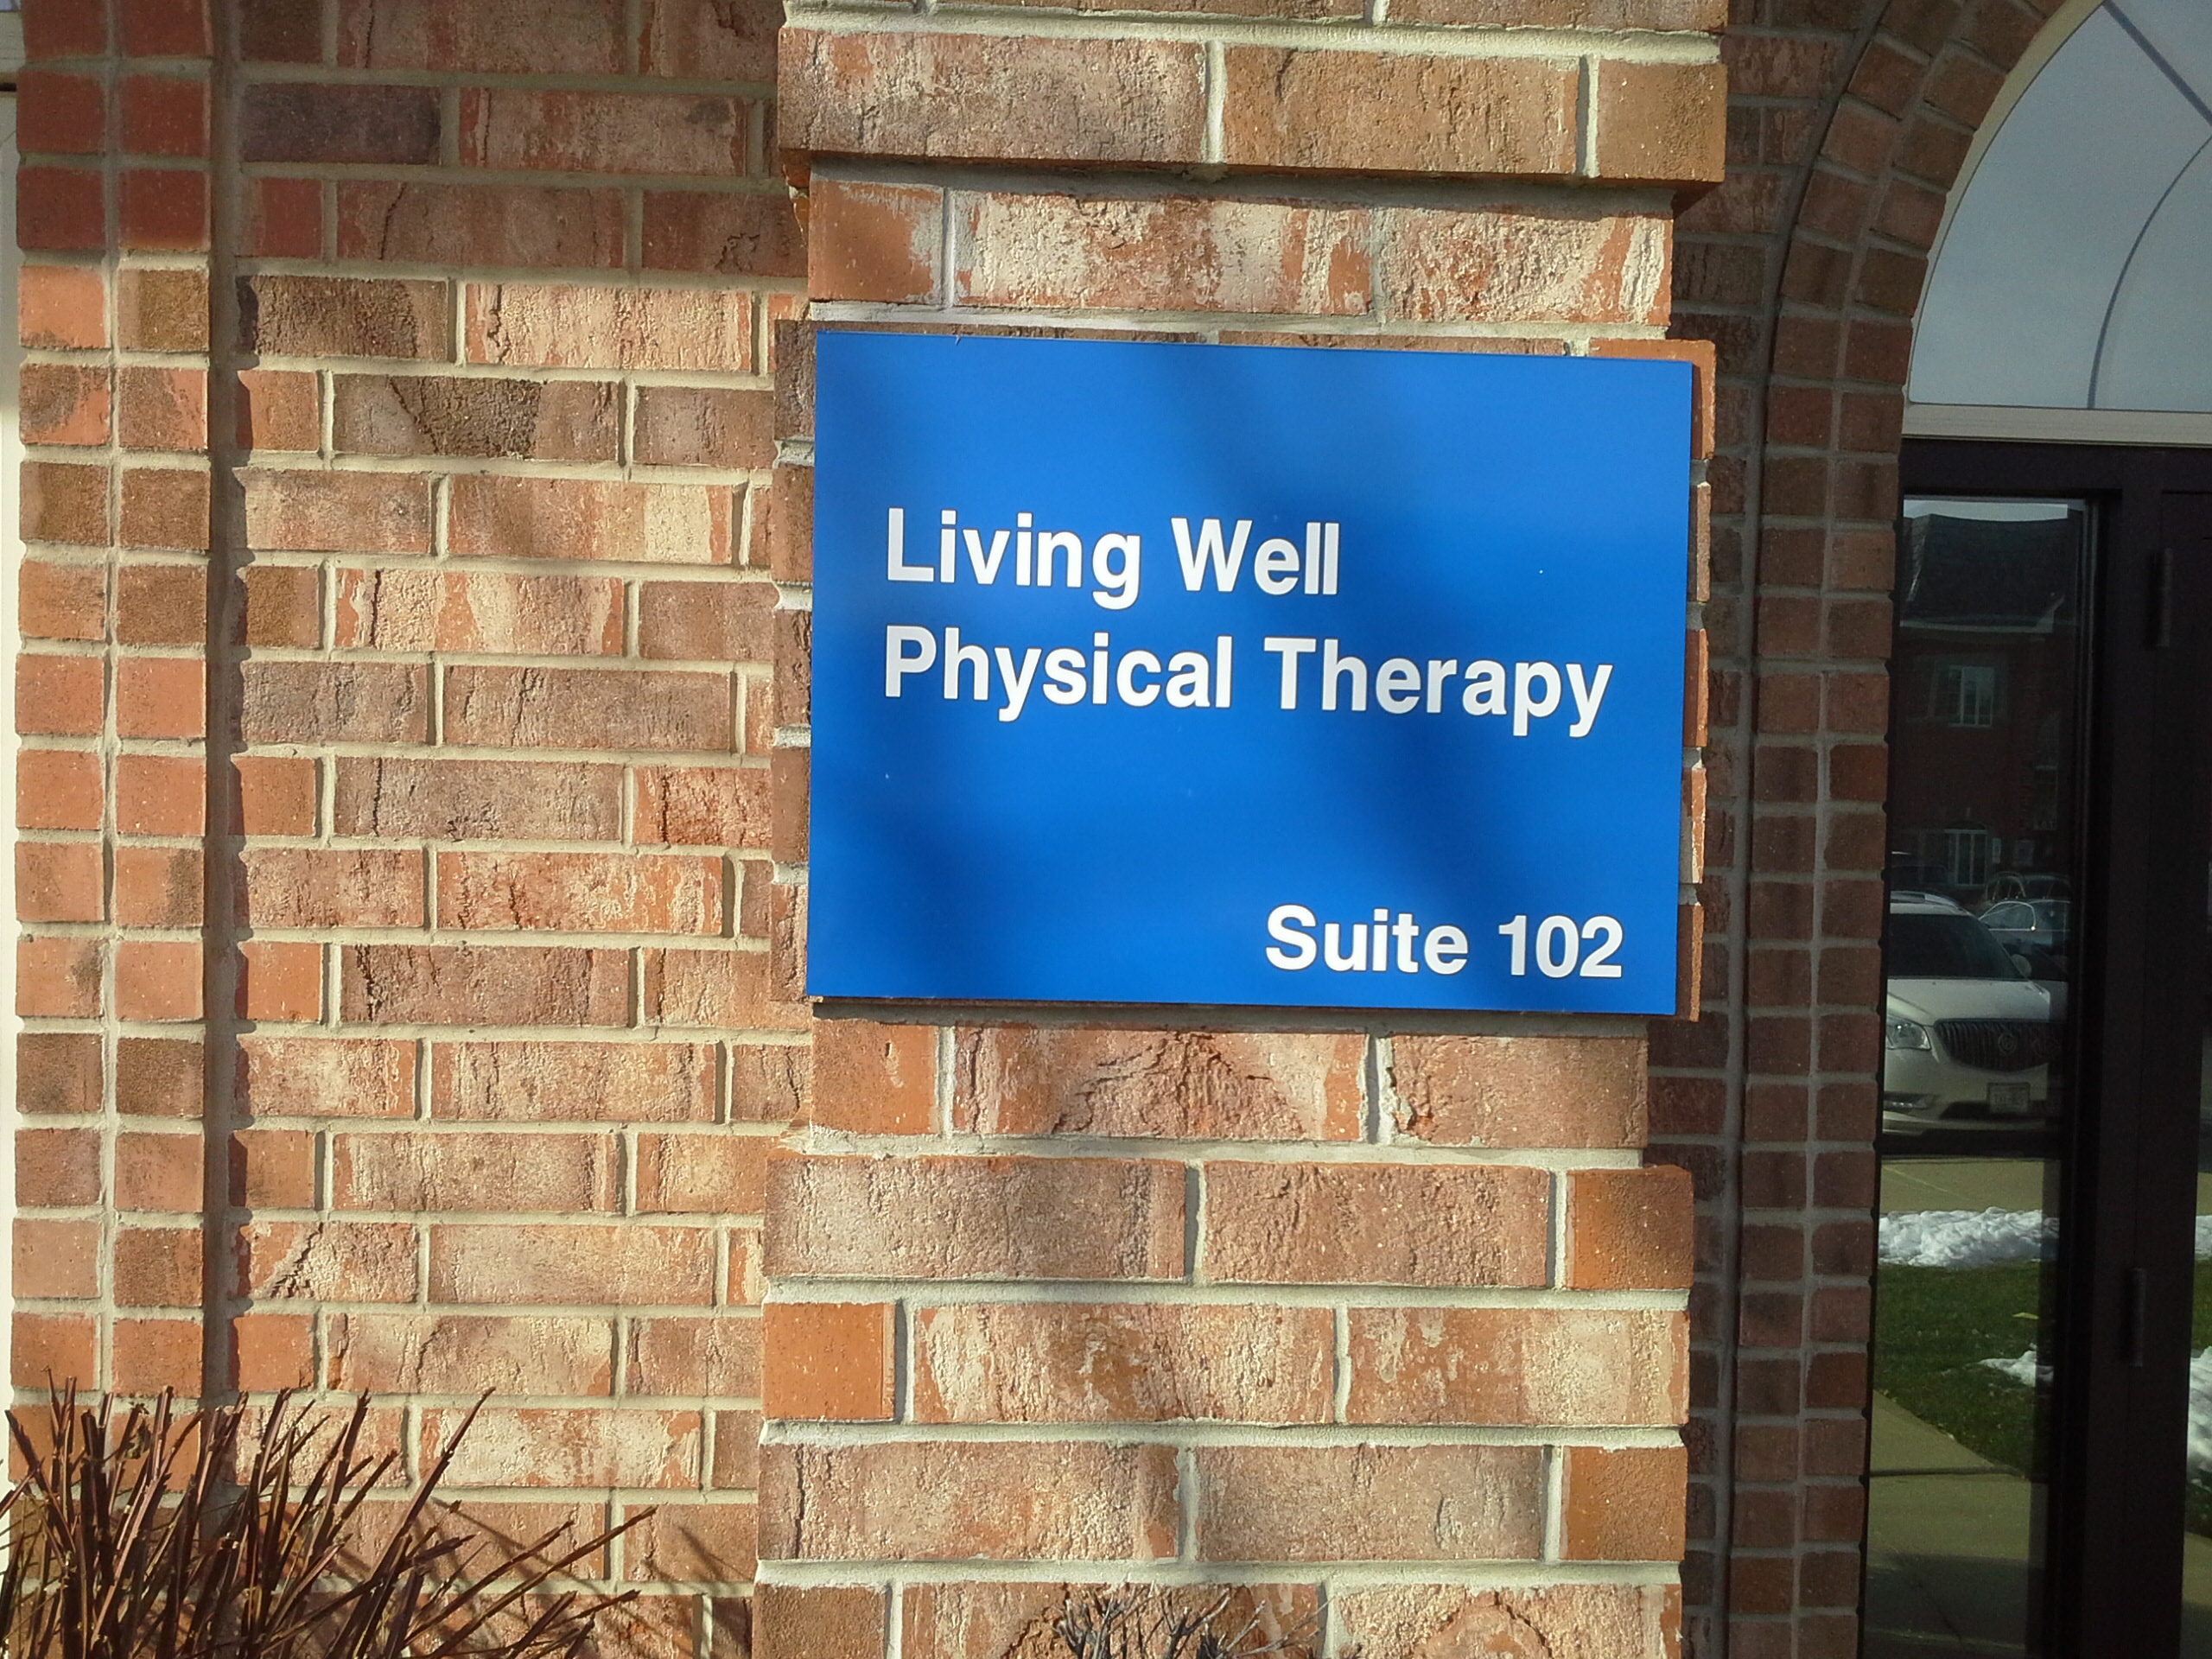 Living Well Physical Therapy